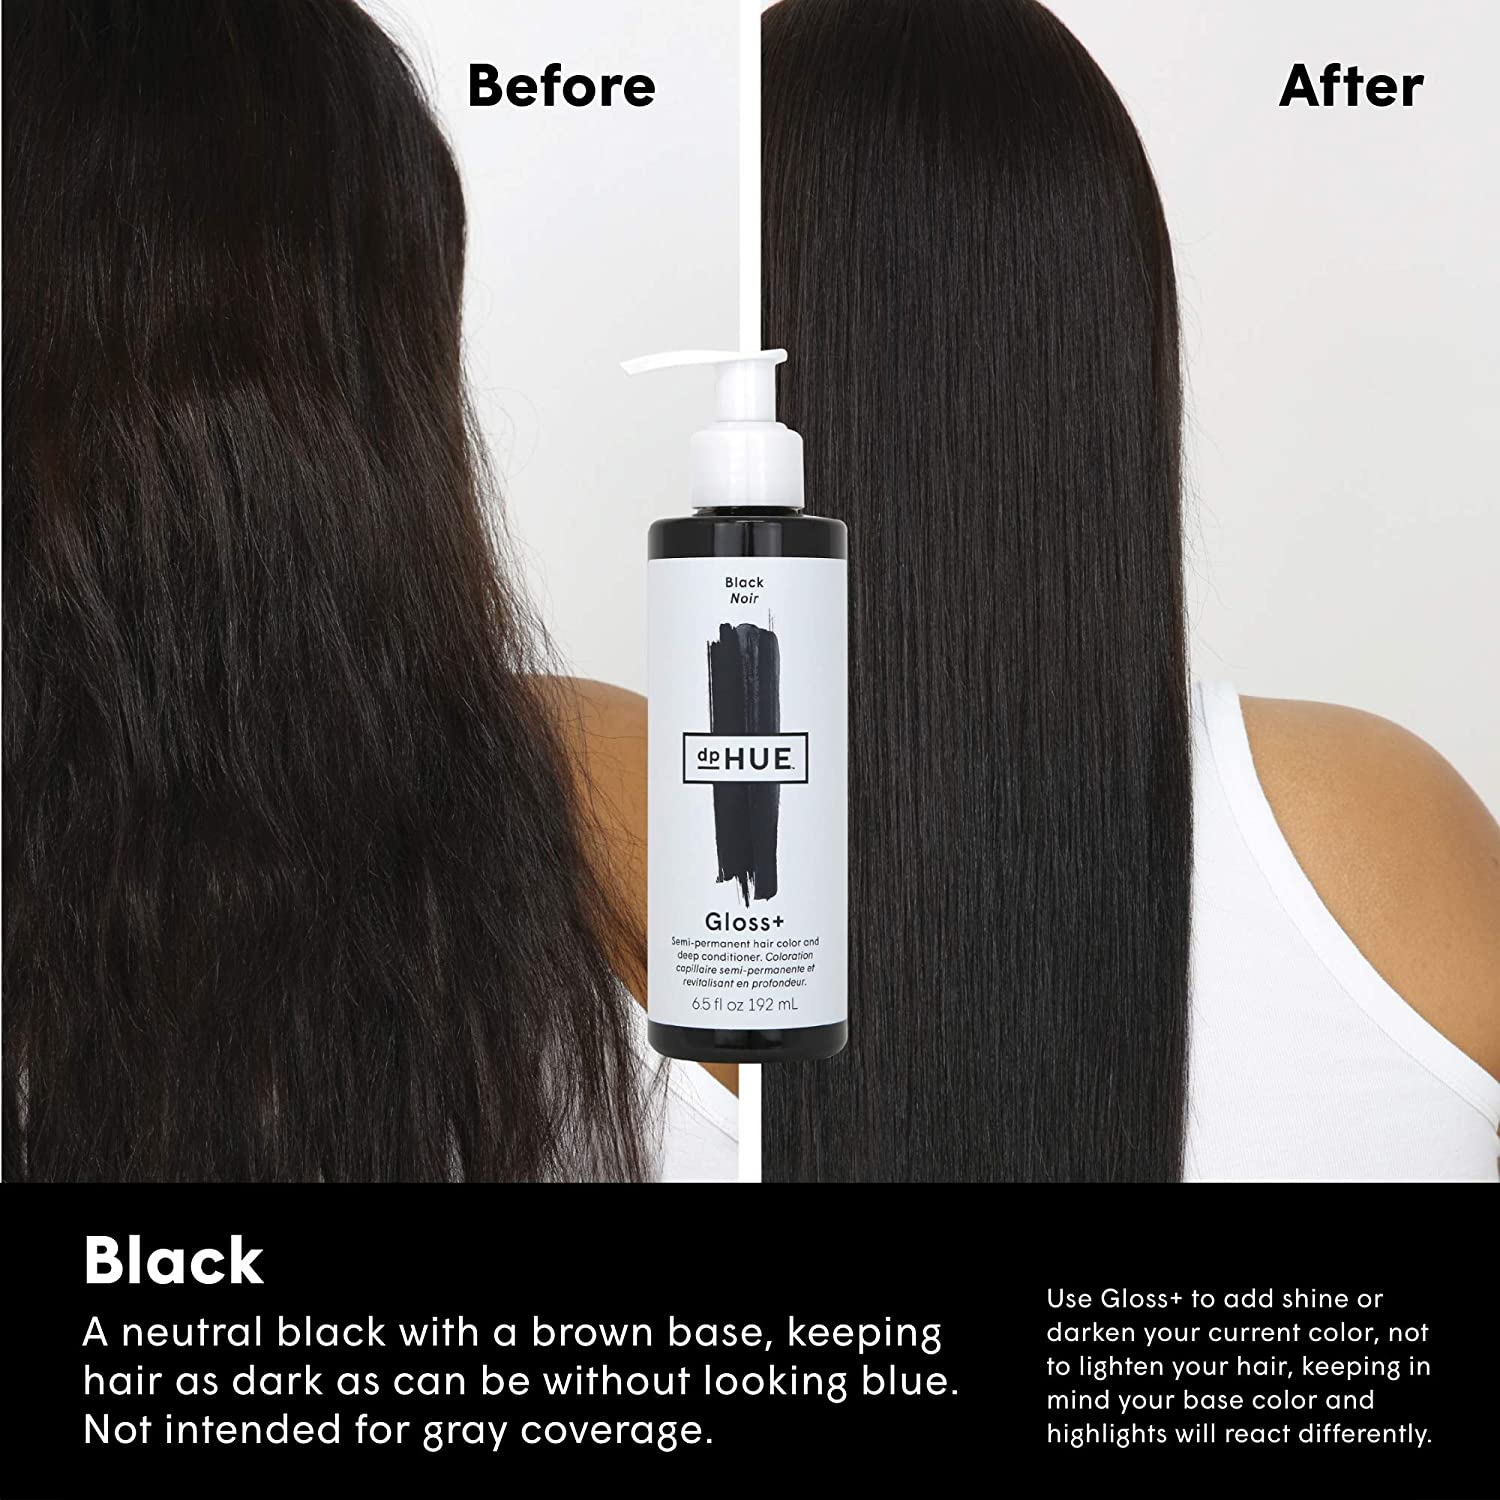 dpHUE Gloss+ - Black, 6.5 oz - Color-Boosting Semi-Permanent Hair Dye & Deep Conditioner - Enhance & Deepen Natural or Color-Treated Hair - Gluten-Free, Vegan : Beauty